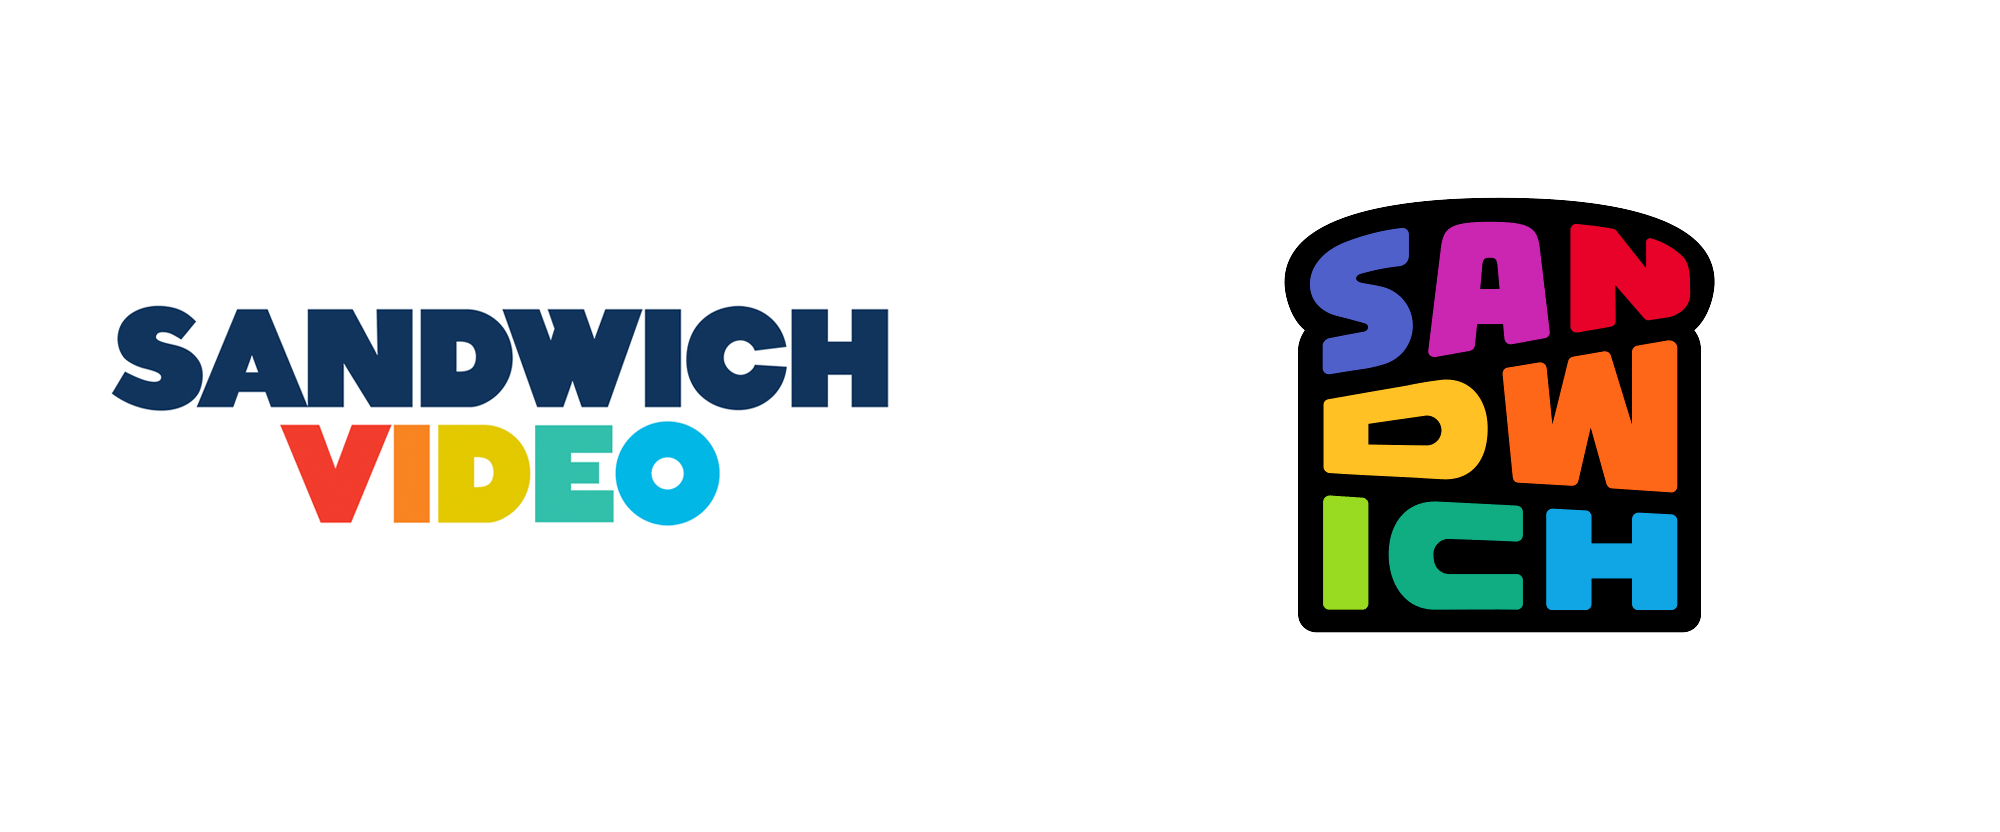 New Logo for Sandwich by Cosma Schema